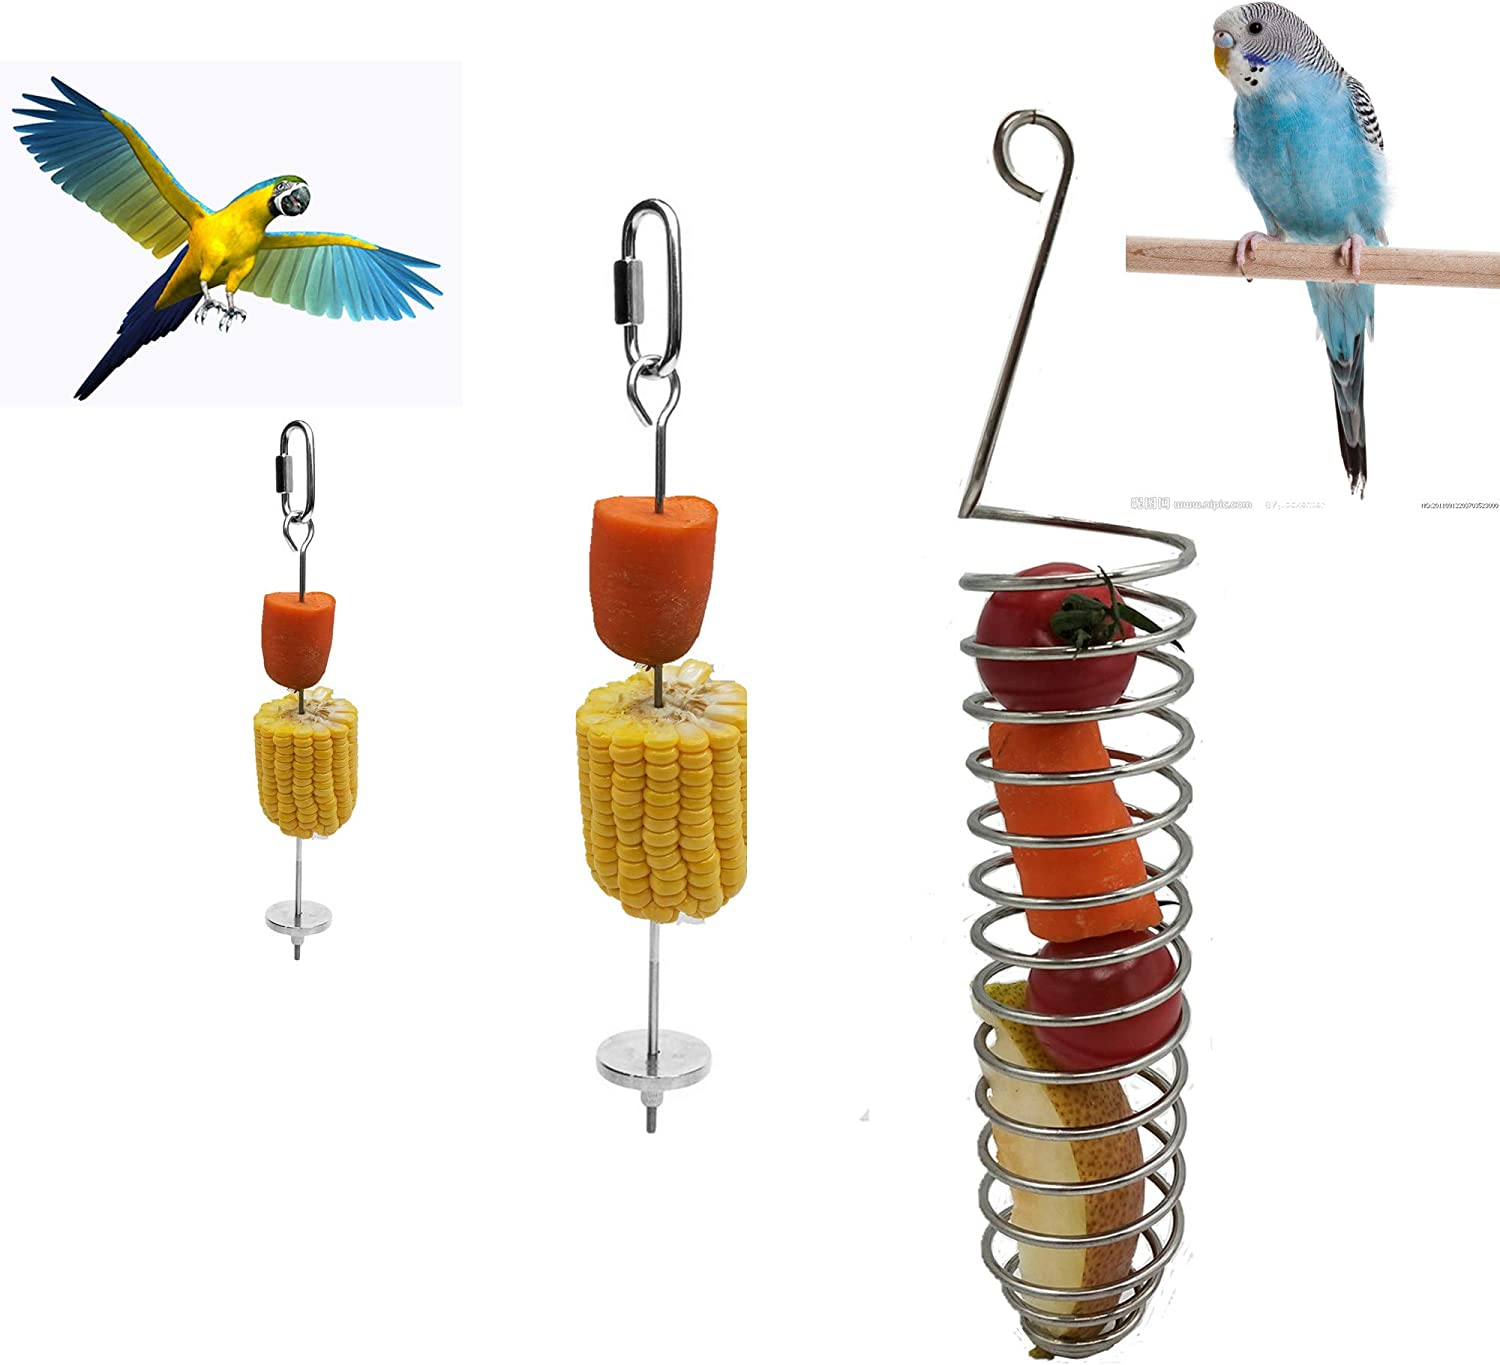 HFBlins 3 PCS Bird Food Holder, Parrot Hanging Cage Vegetable Fruit Feeder, Stainless Steel Bird Treat Skewer Parrot Foraging Toy, Animal Feeding Treating Tool